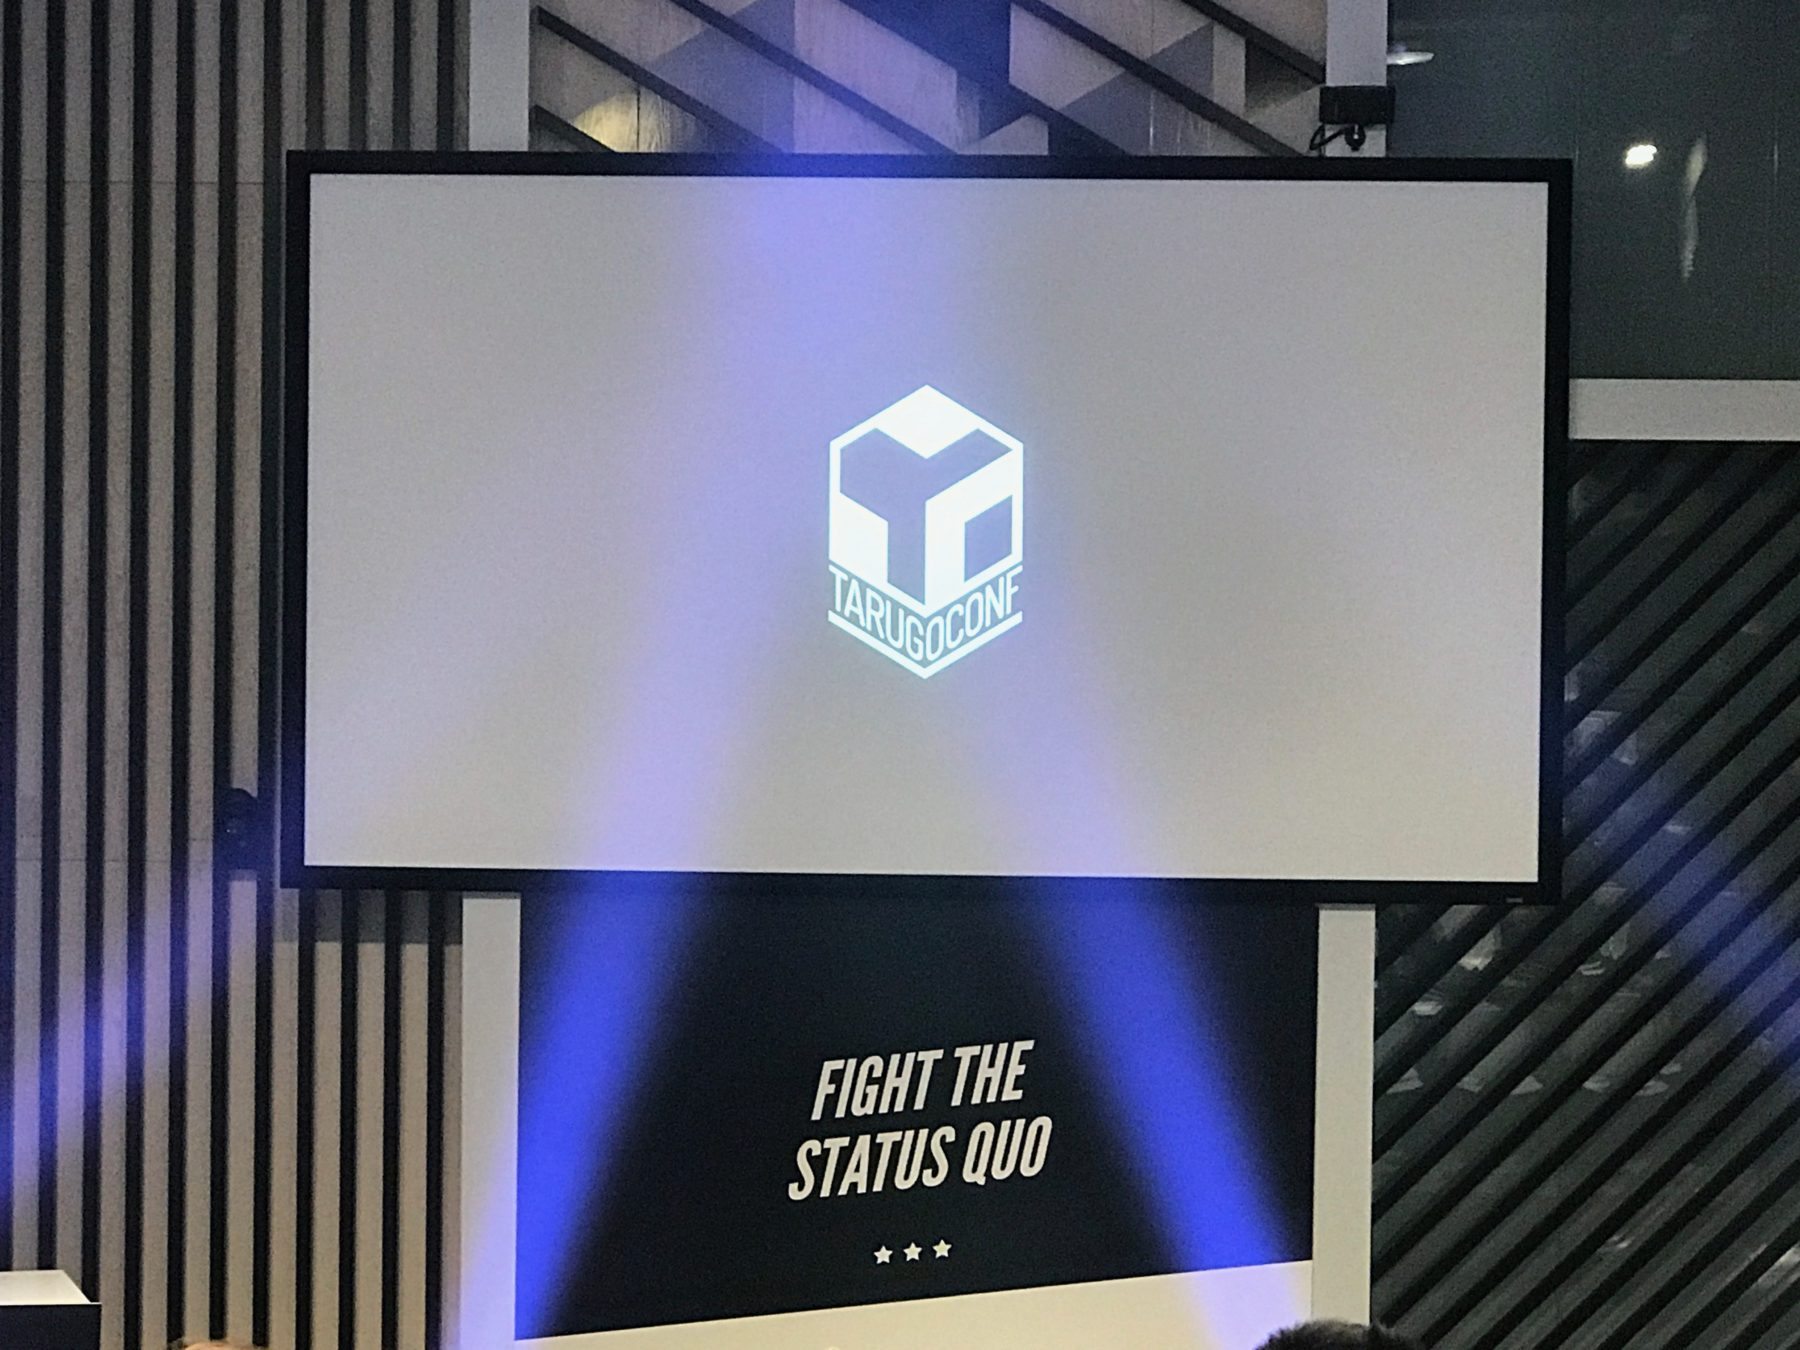 TarugoConf 2017. Fight the status quo.